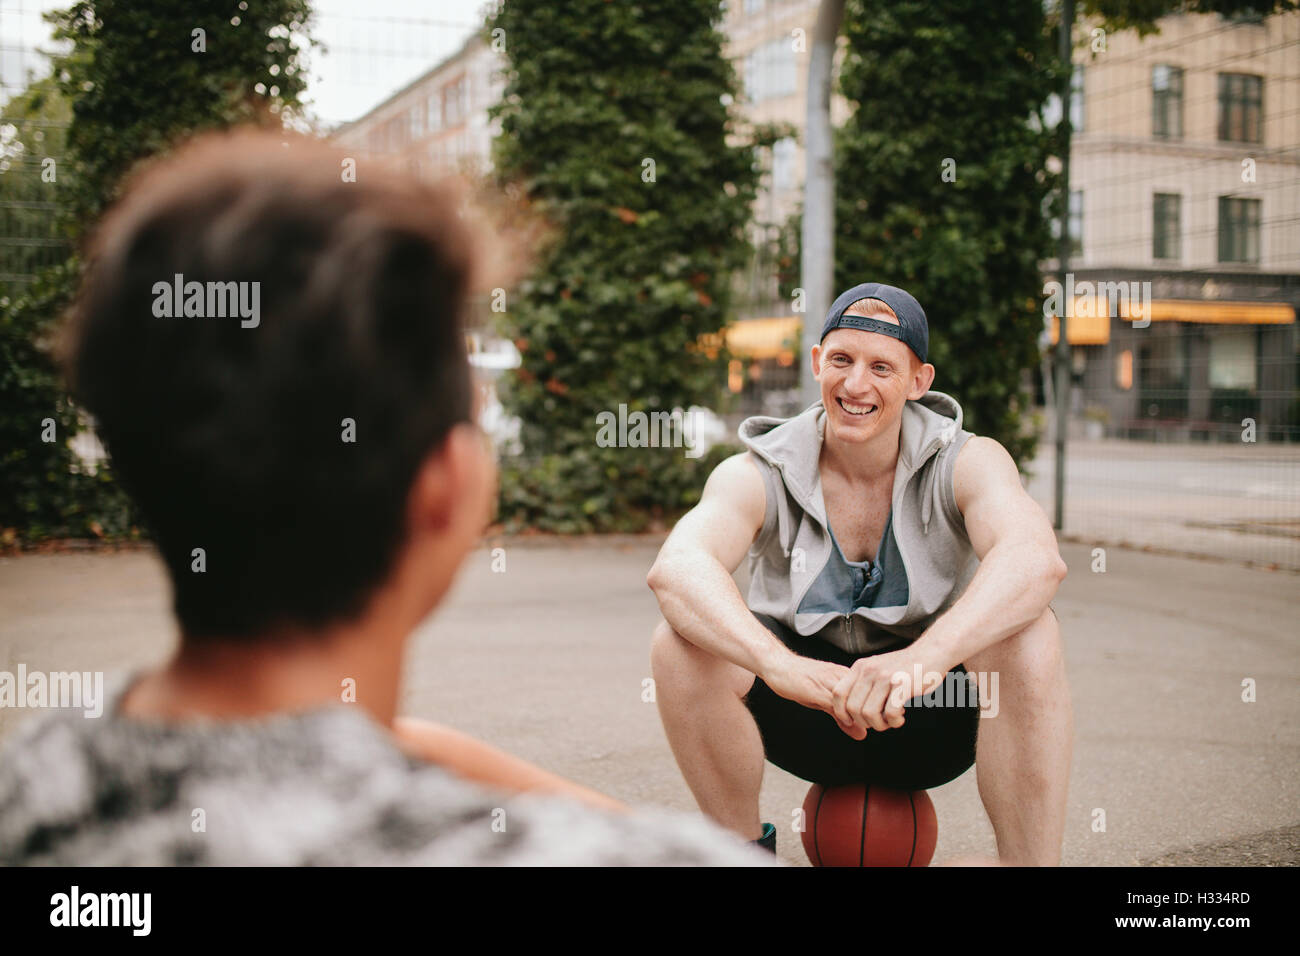 Smiling young guy sitting on basketball court and talking with friend. Two friends relaxing after playing basketball - Stock Image